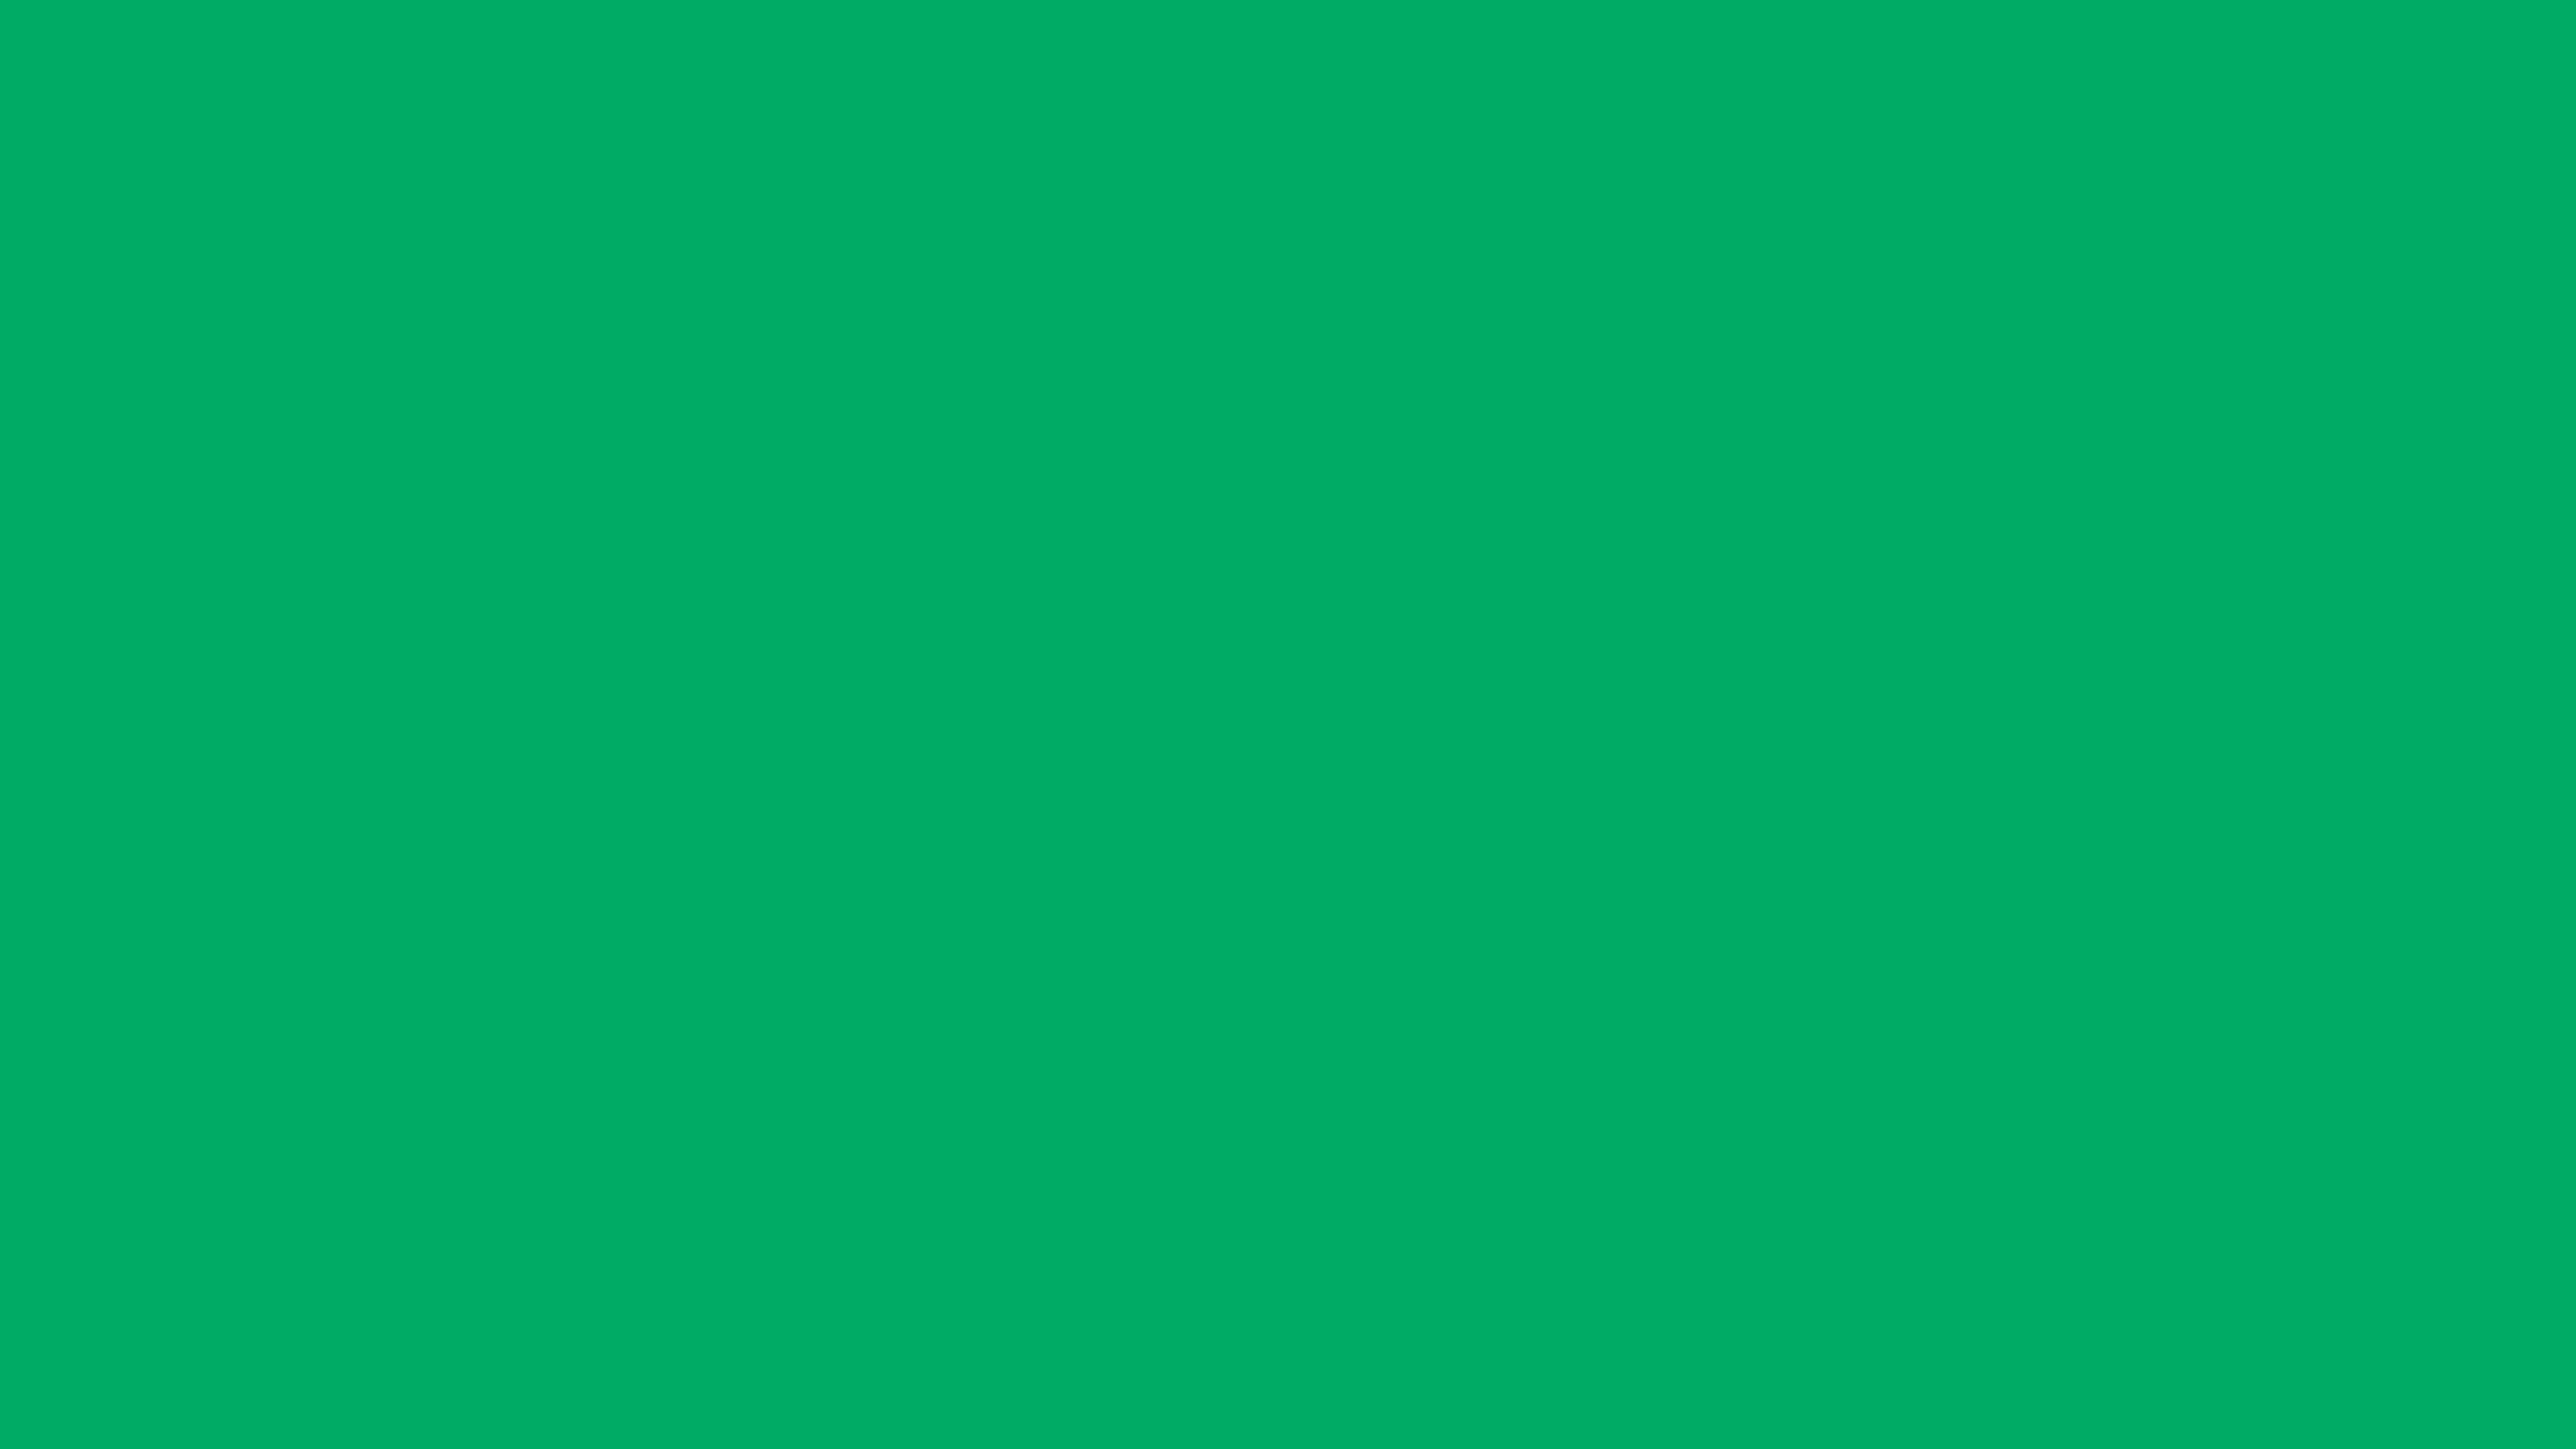 3840x2160 GO Green Solid Color Background